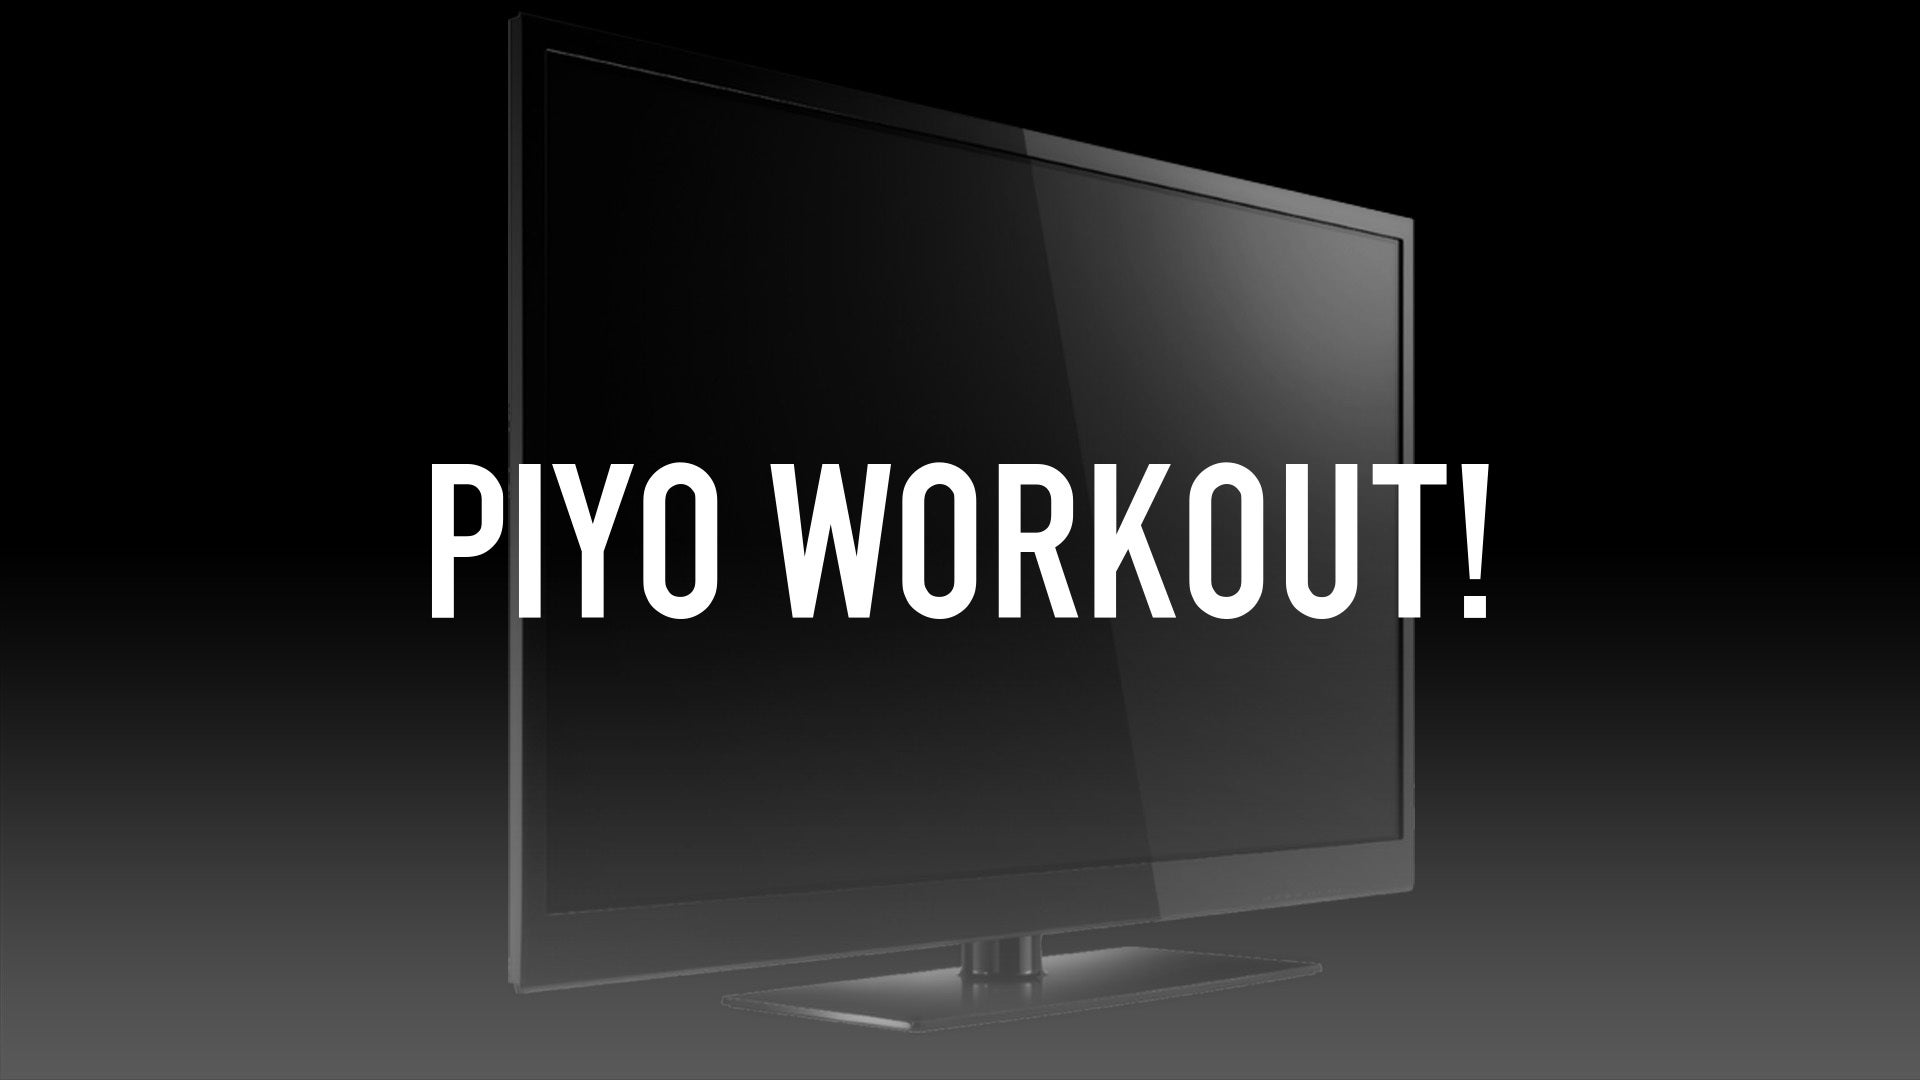 PiYo Workout!